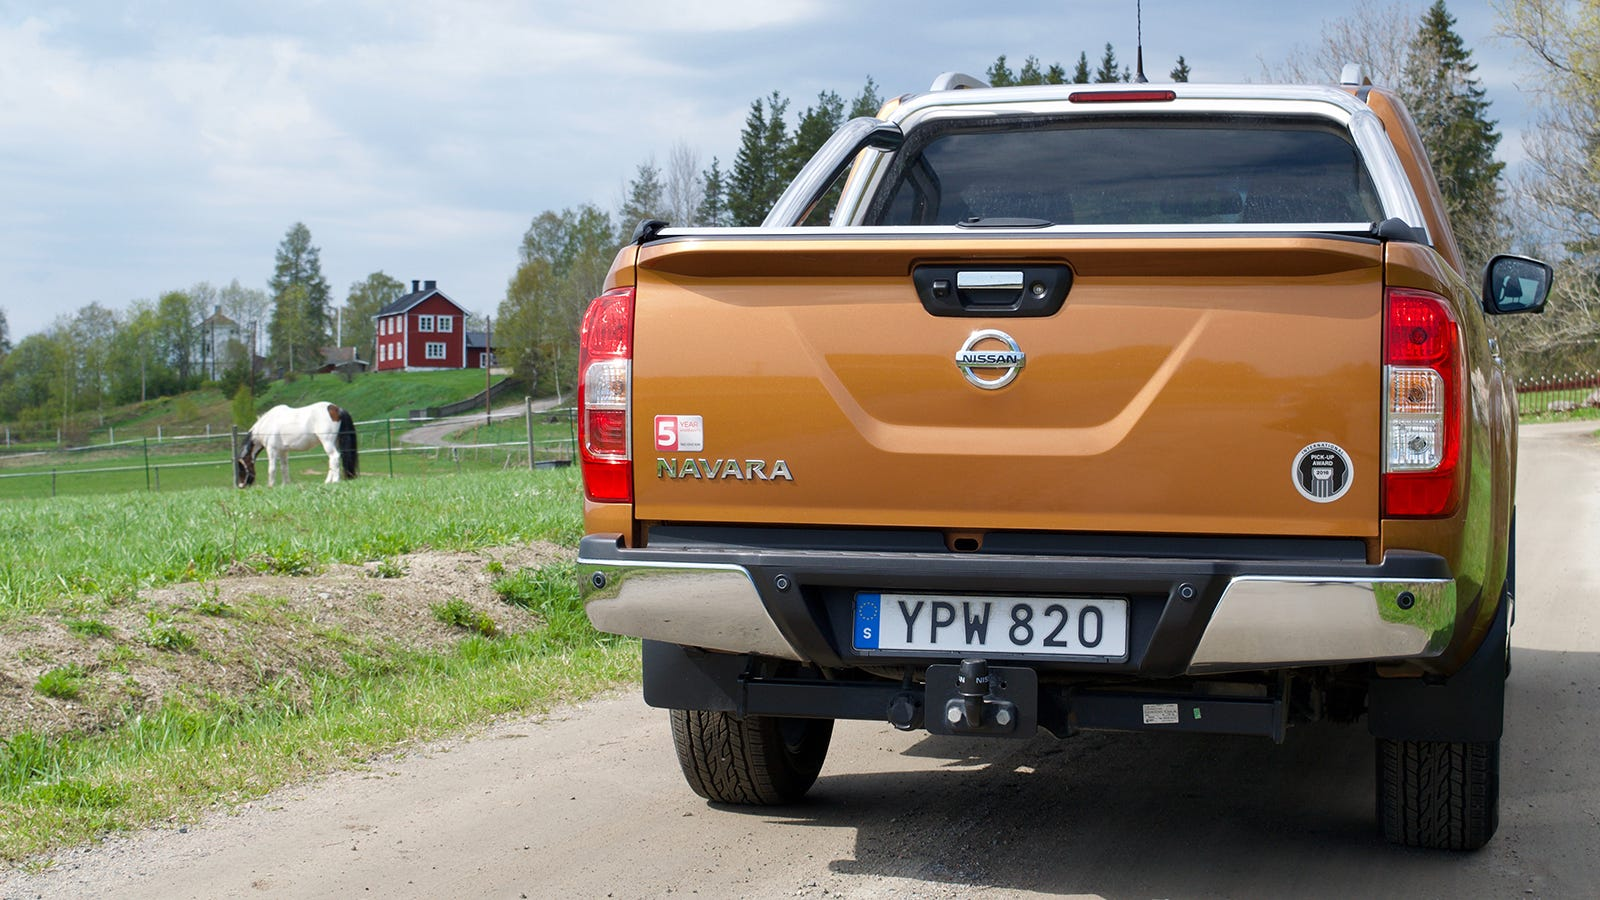 The Nissan Navara Is a Solid Truck